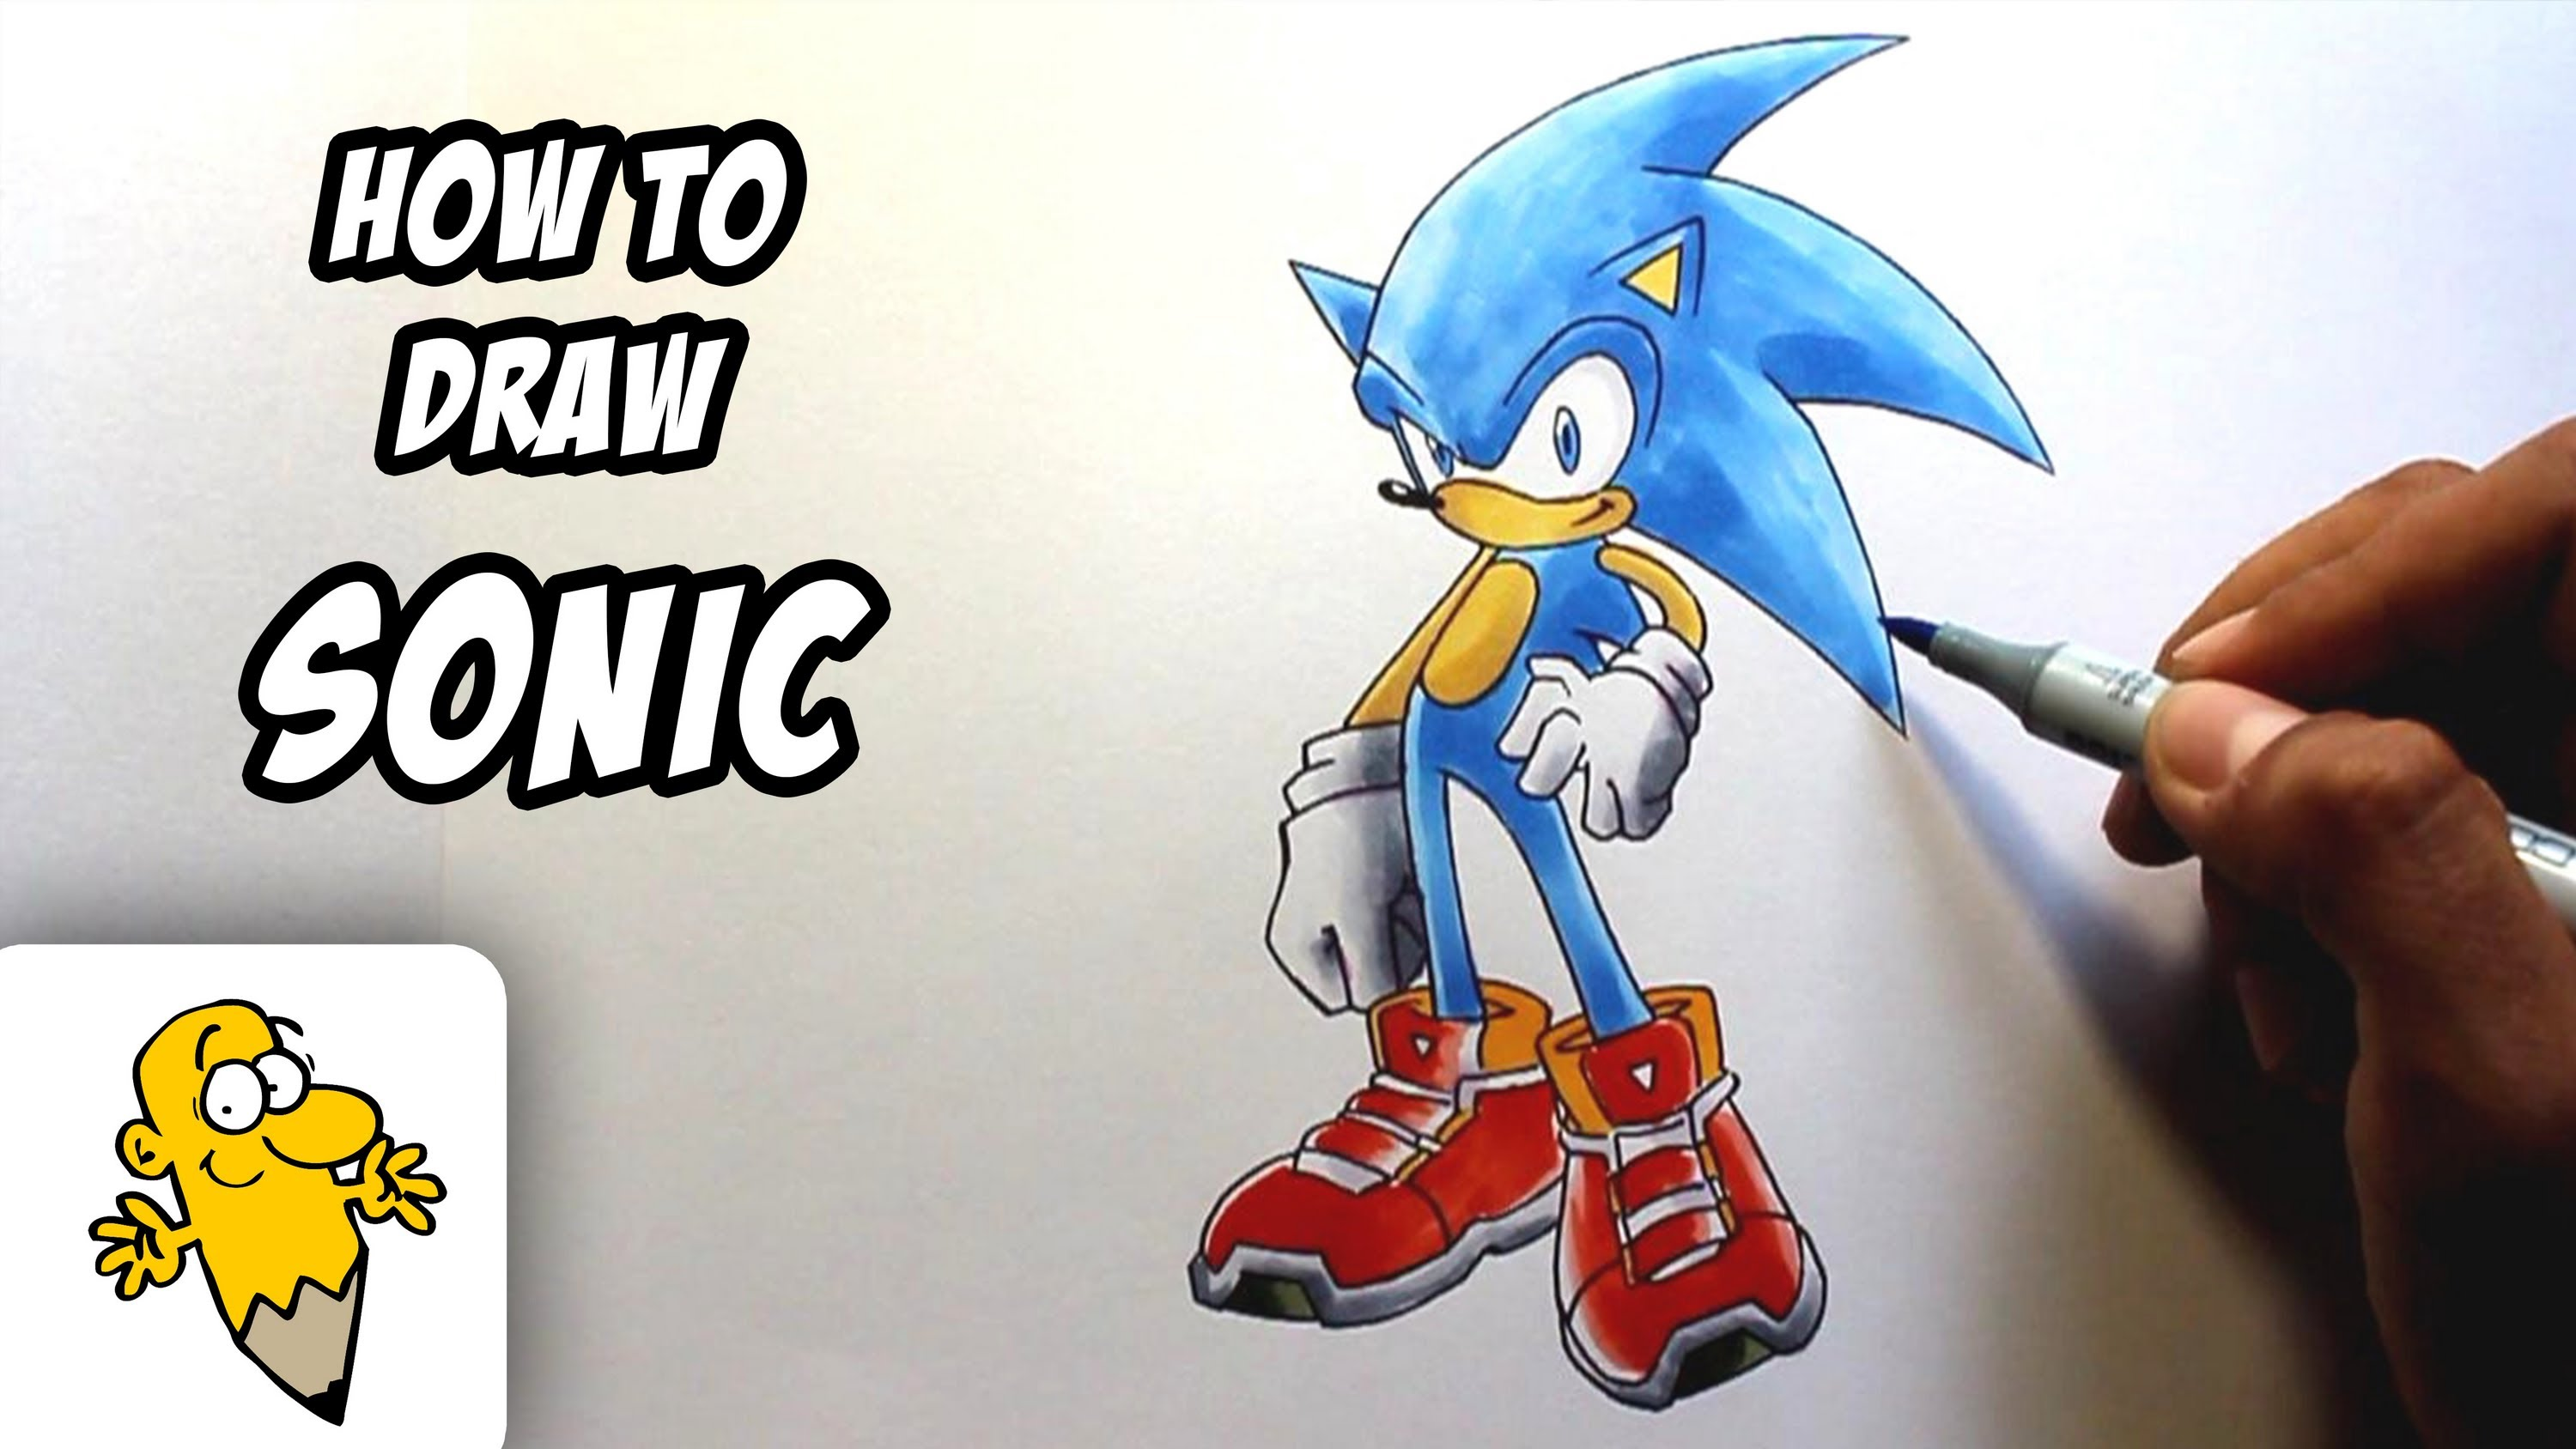 Drawn hedgehog anime The How  drawing draw